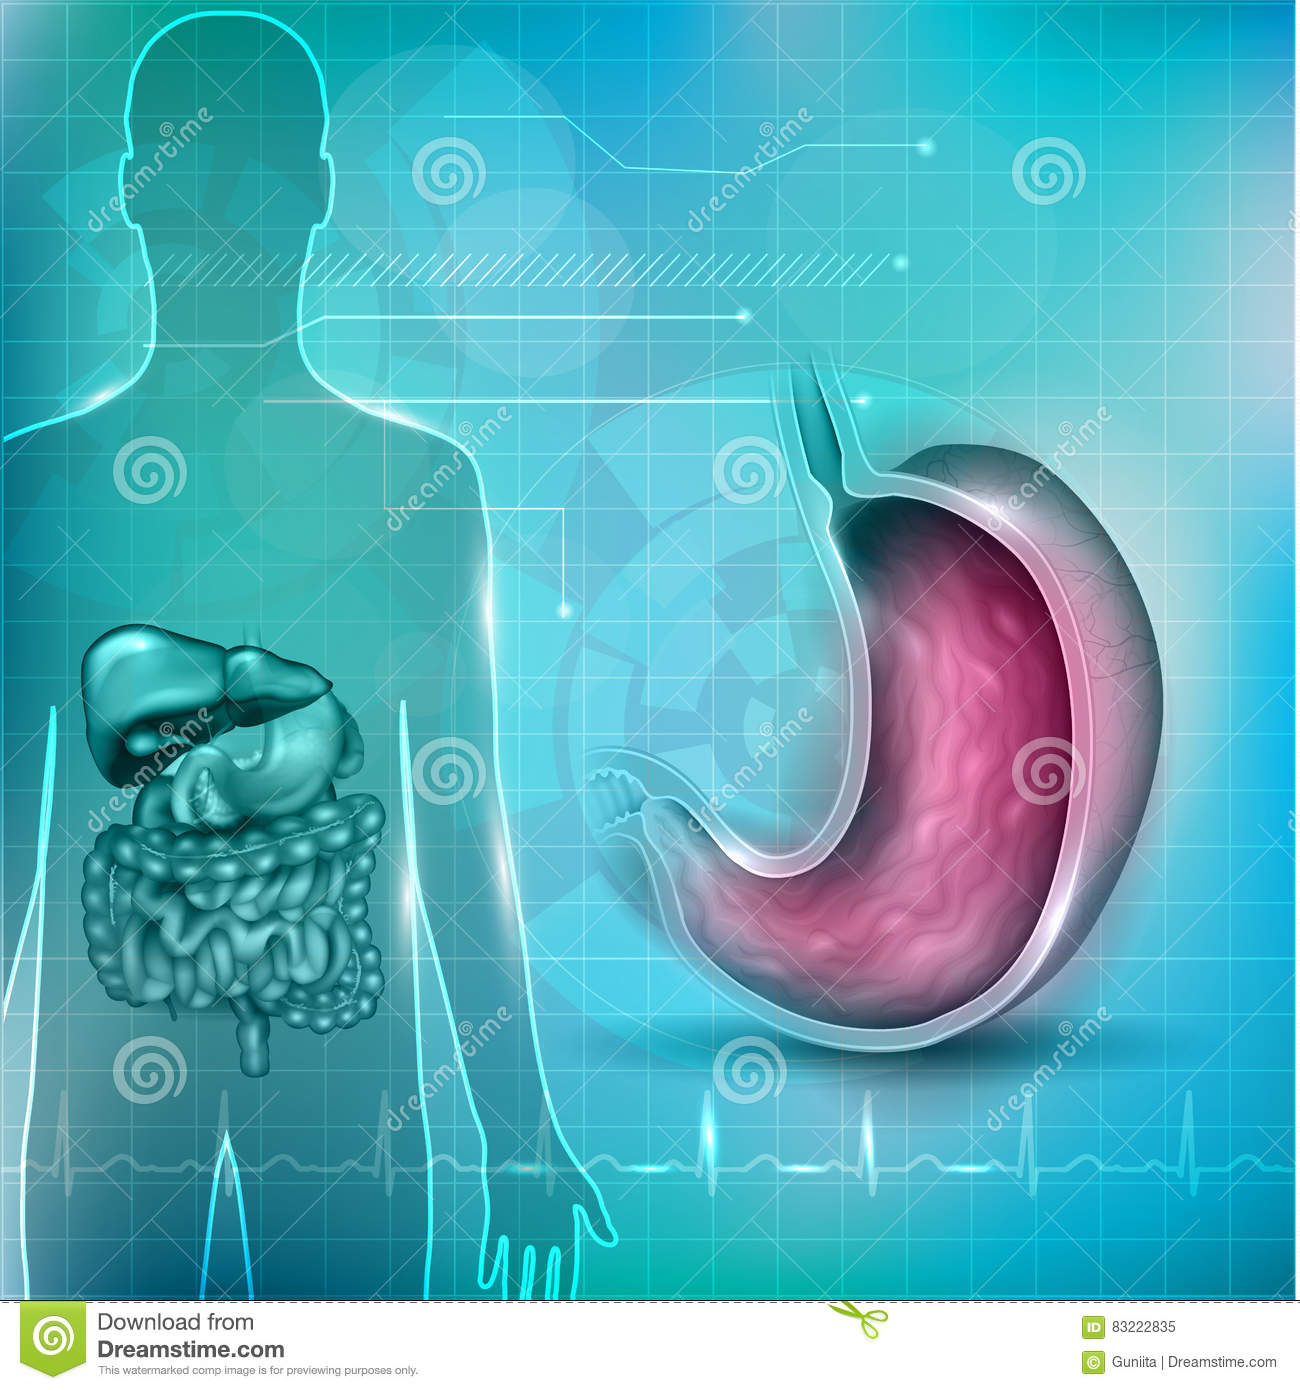 Stomach Cross Section Stock Vector Illustration Of Biology 83222835